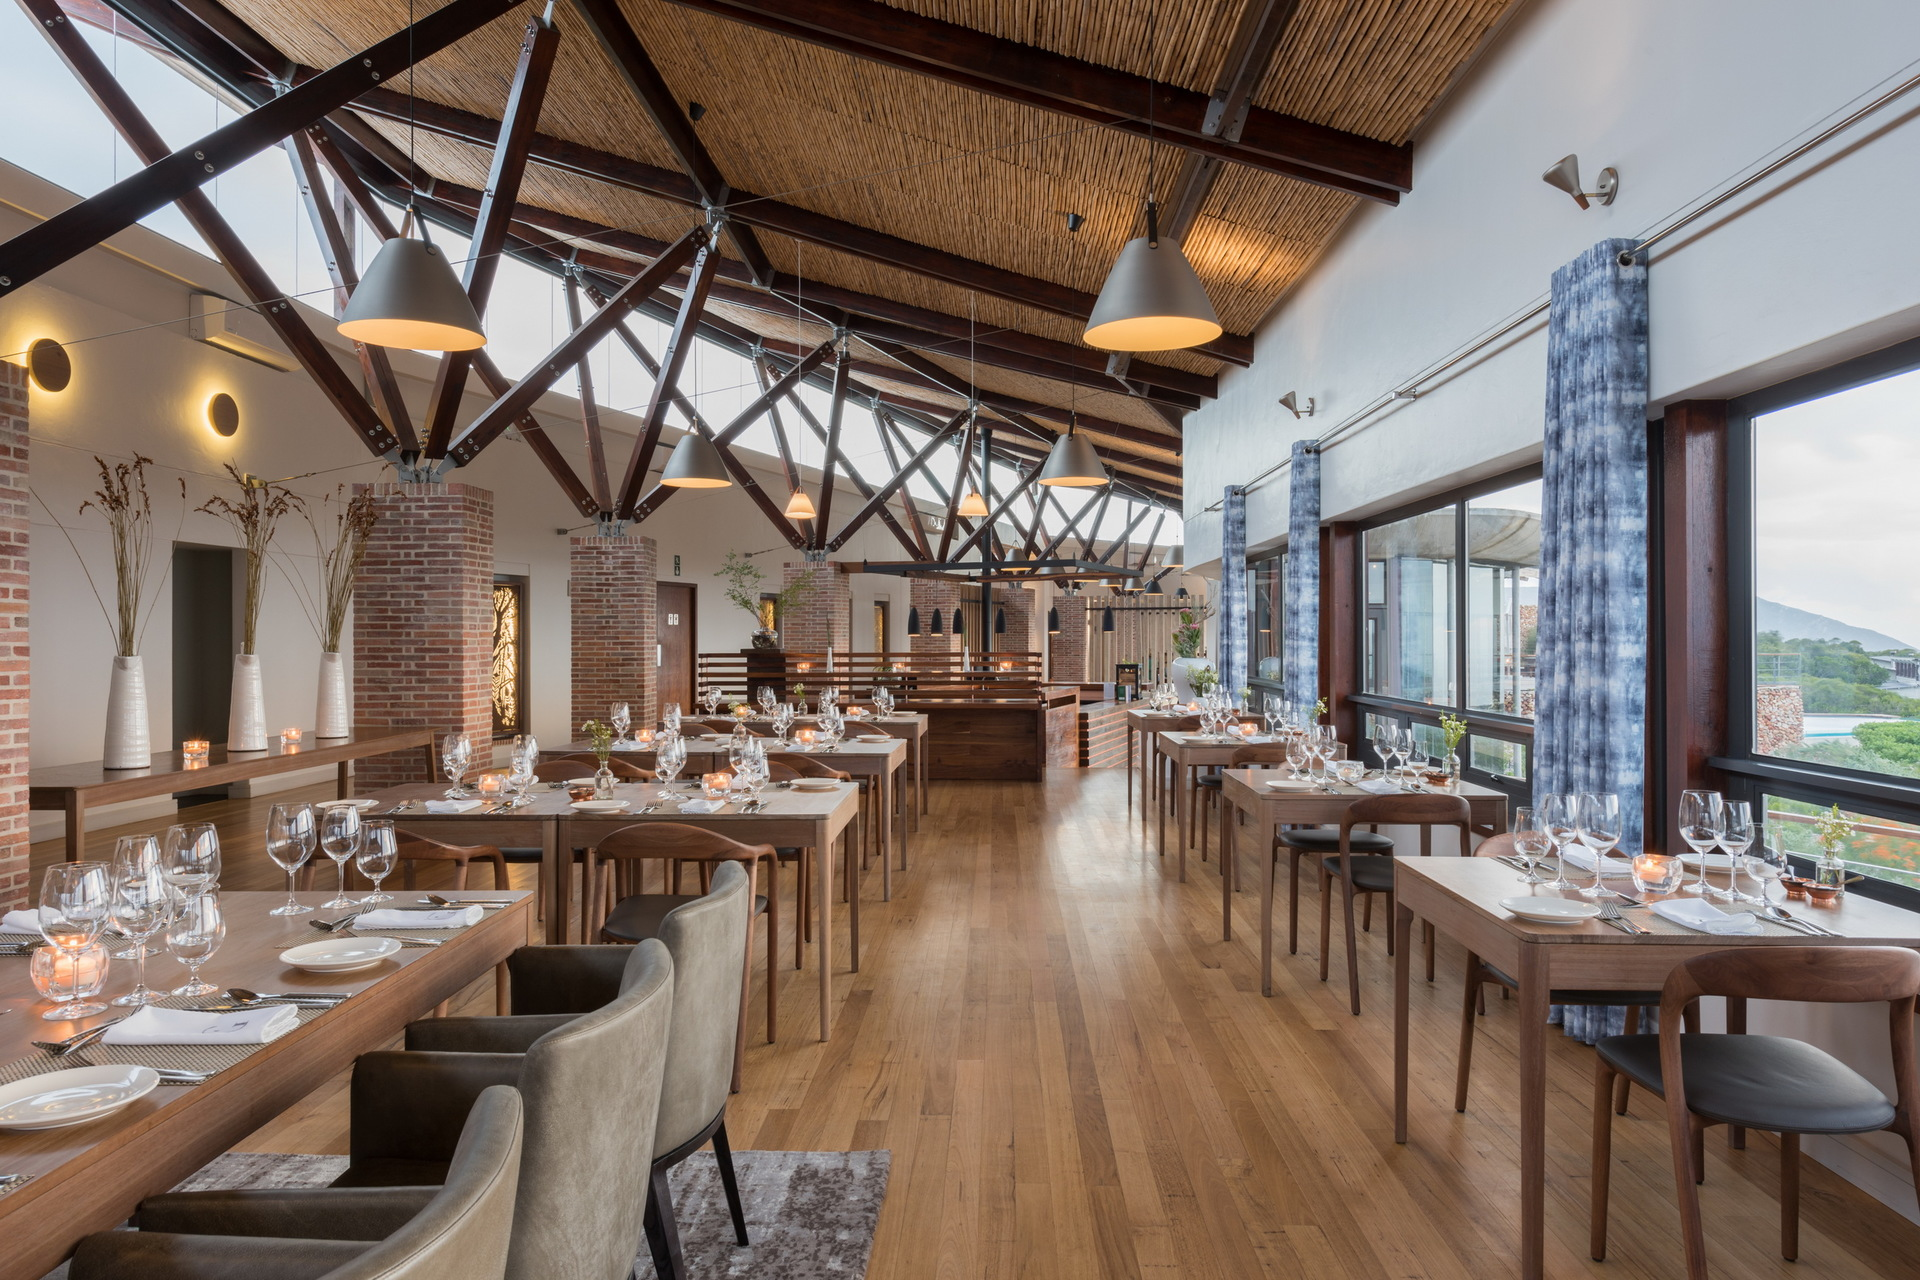 grootbos forest lodge - dining area #8.jpg